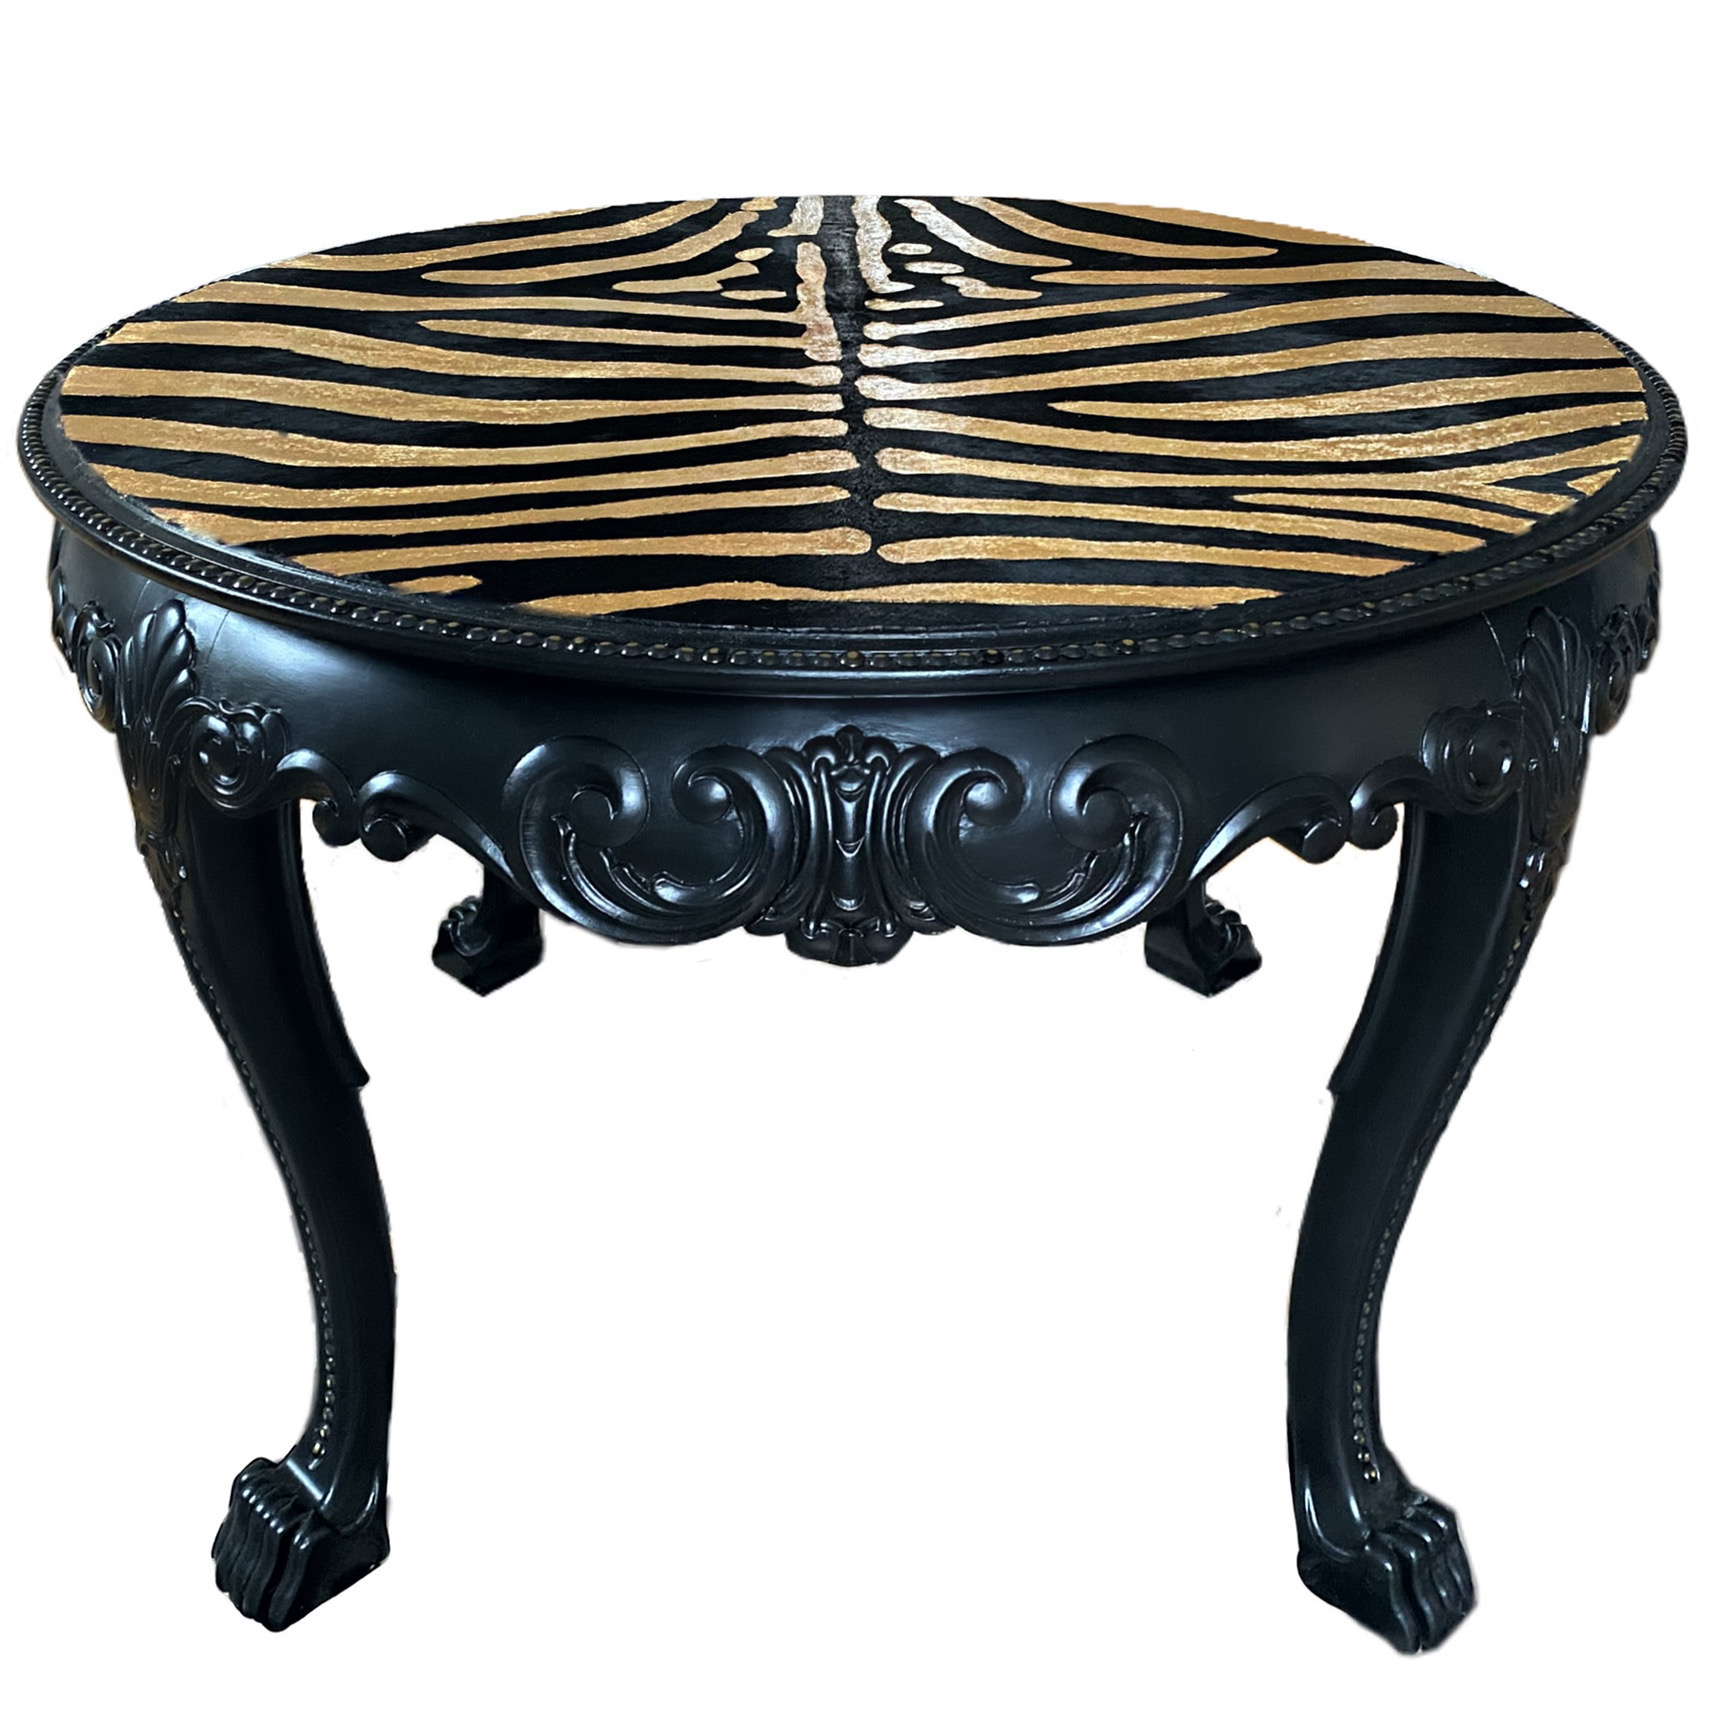 GOLDEN ZEBRA TABLE - SOLD